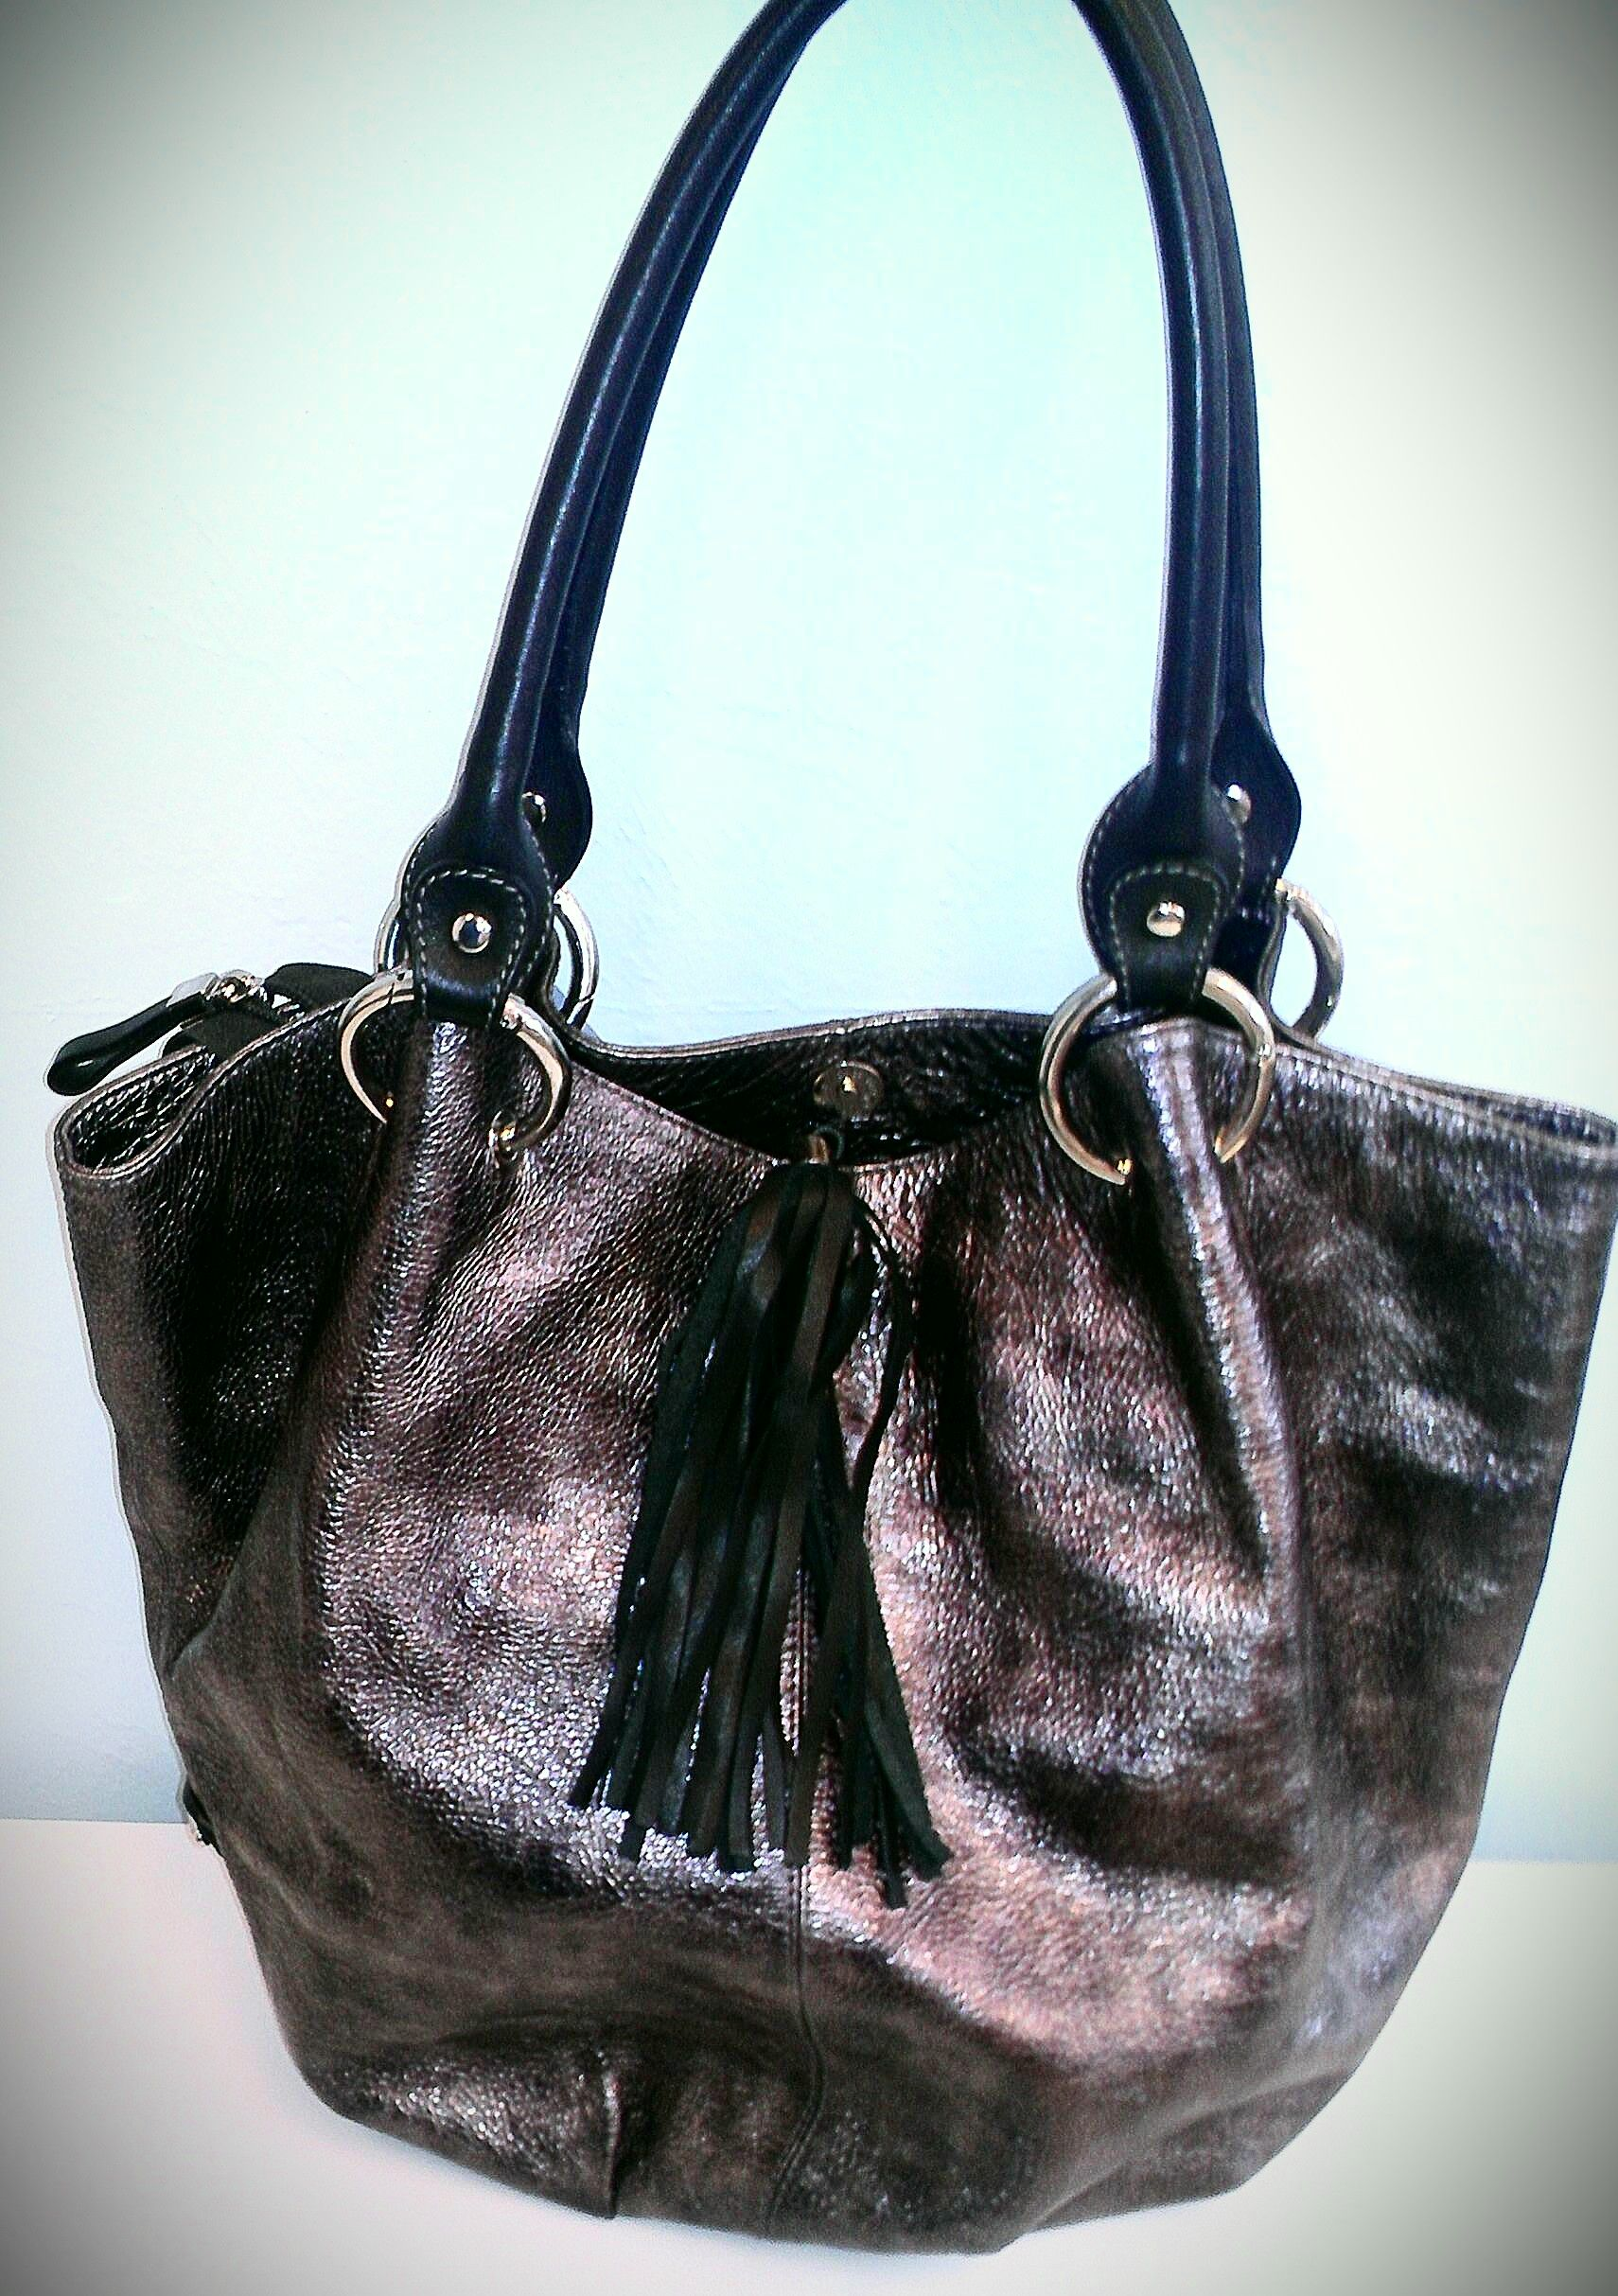 Puntotres Leather Handbag Sold Was Available At Gadgets Gold In Gainesville Fl